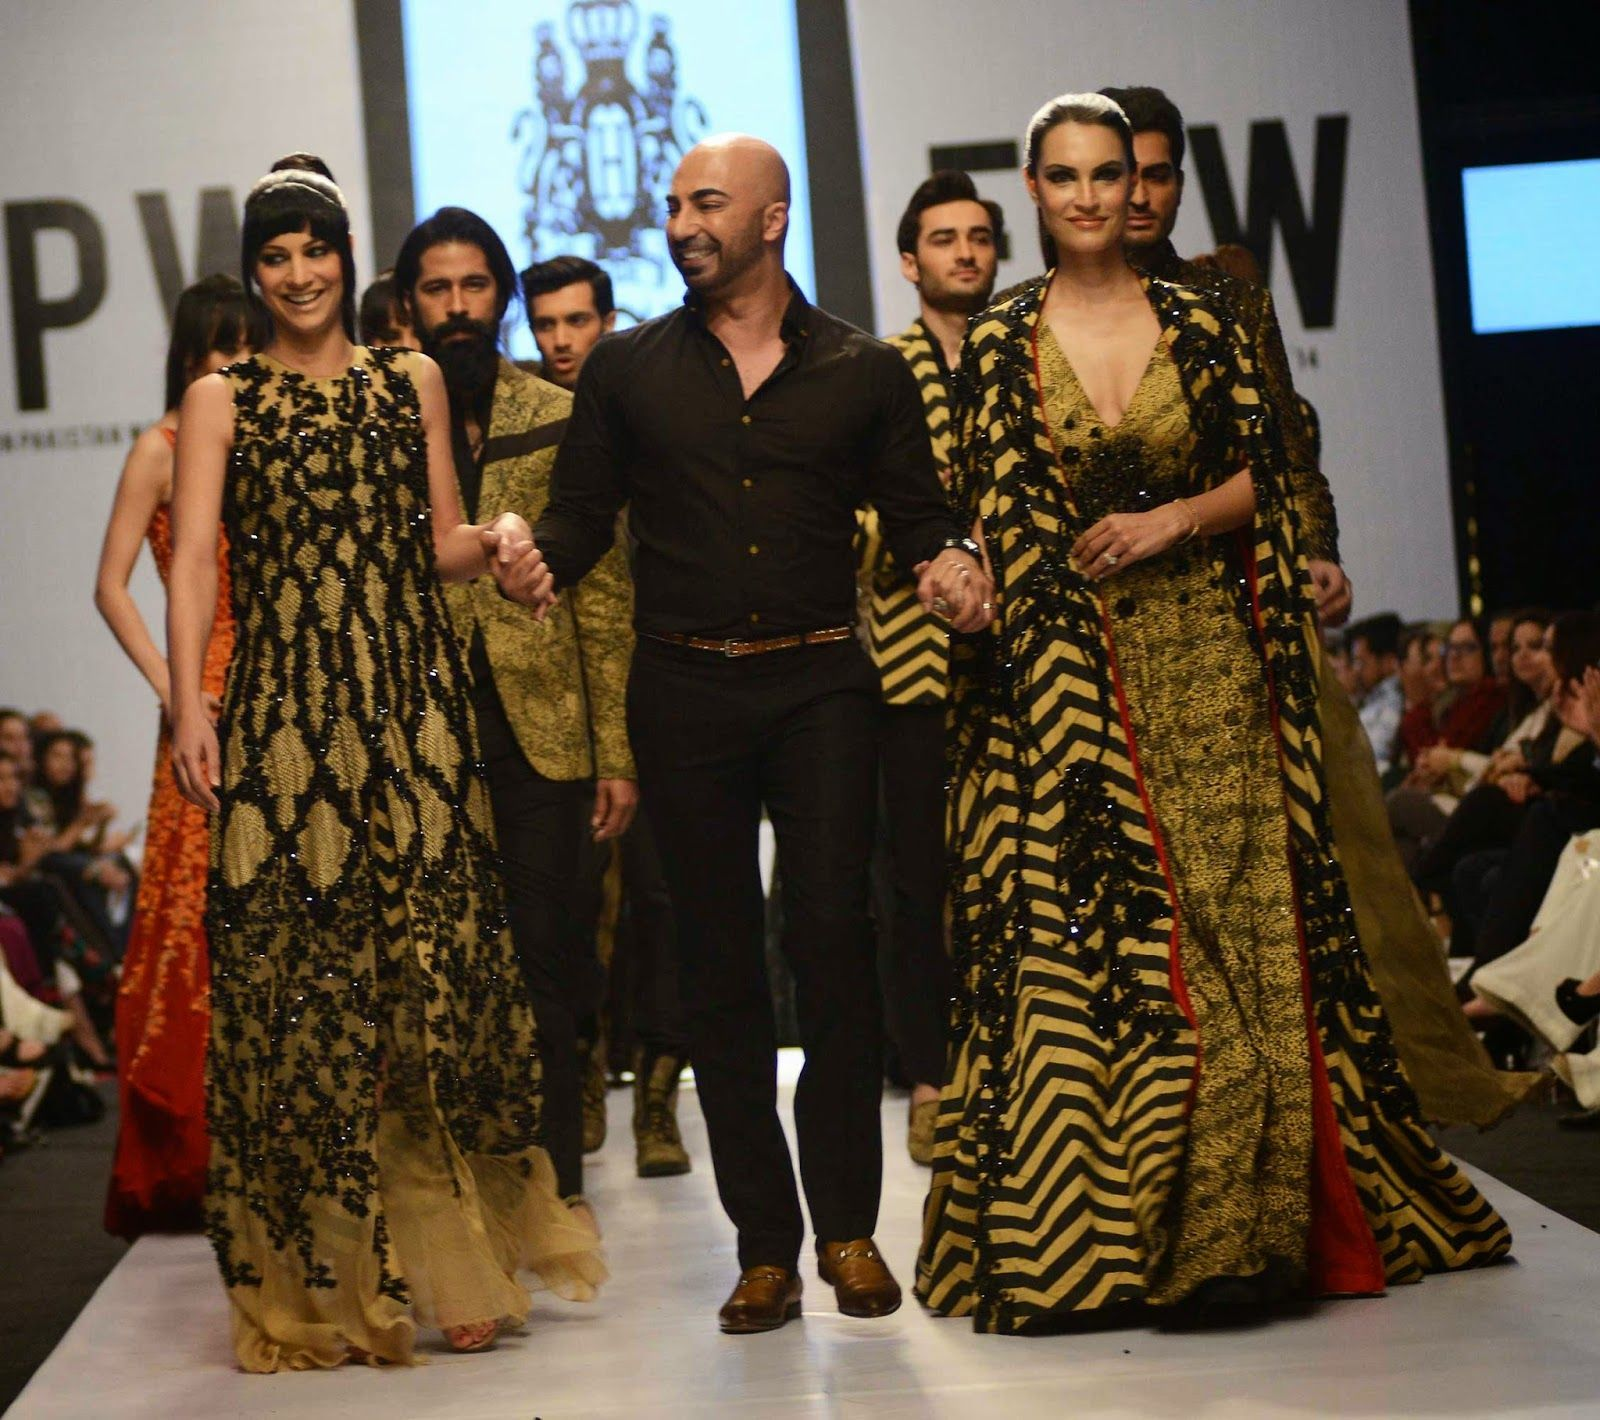 Hassan Sheheryar Yasin Google Search Fashion Pakistani Fashion Fashion Lifestyle